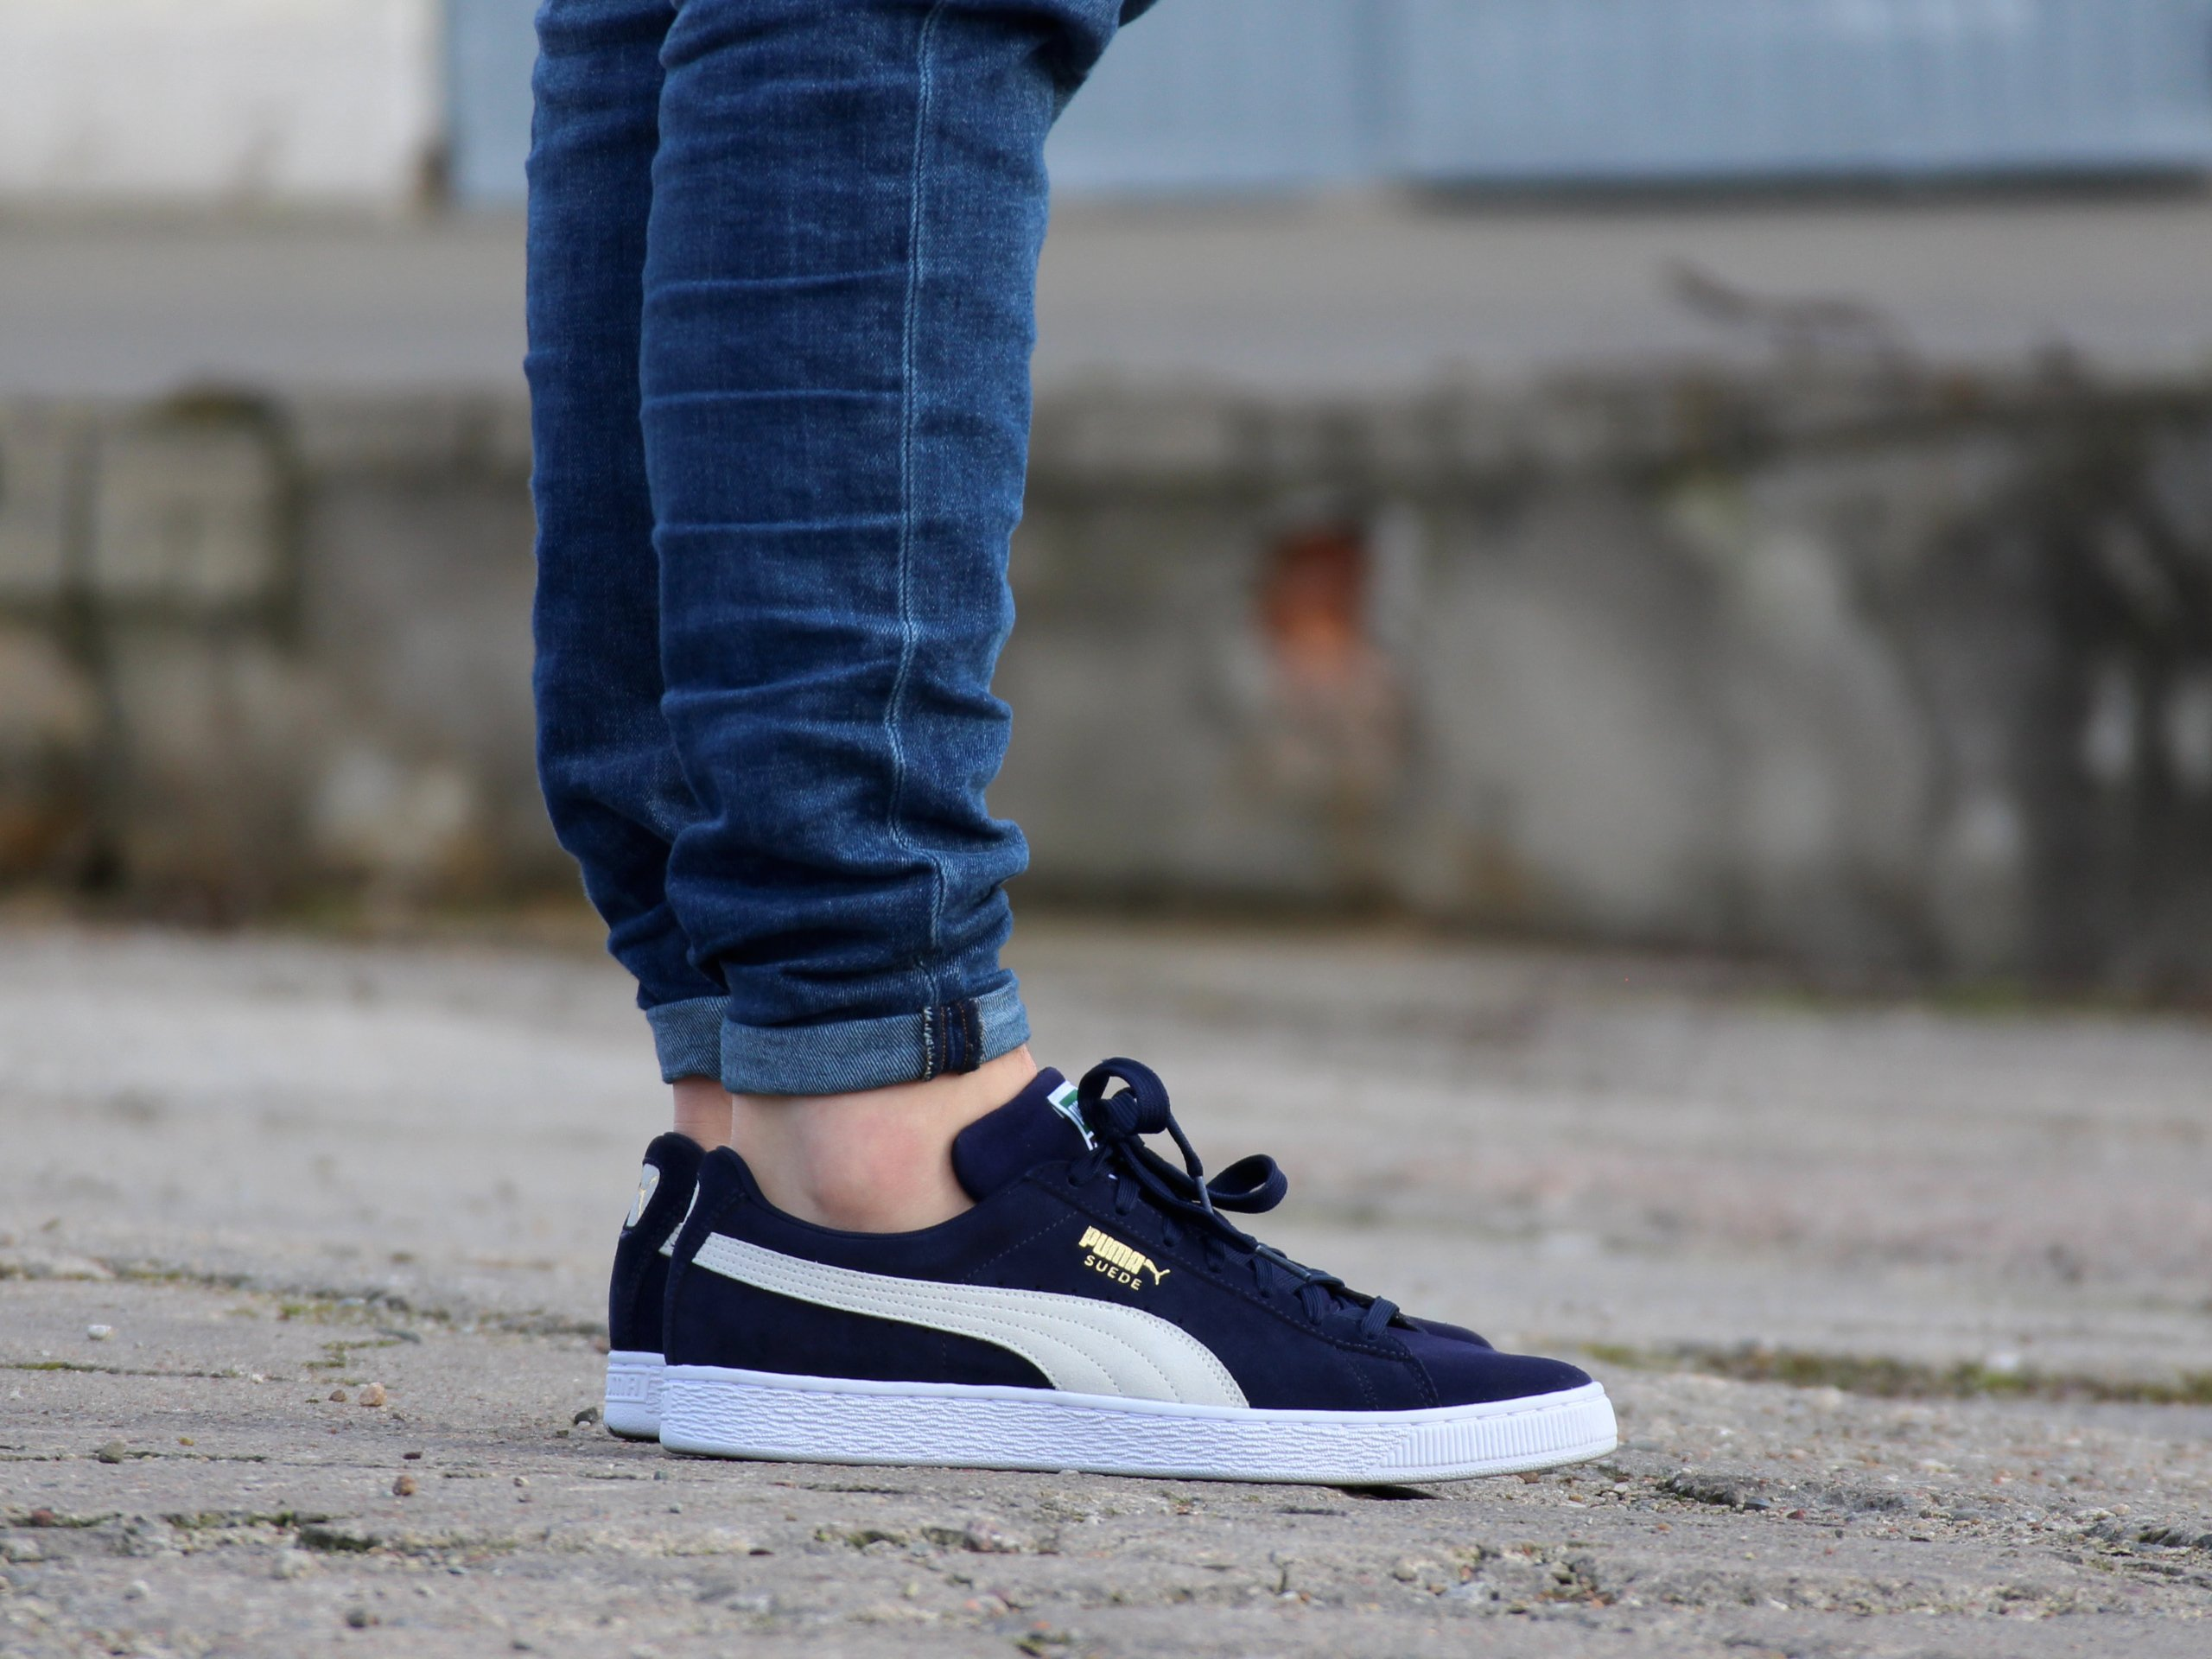 Puma - Suede Classic 356568-51 - Sneakers - Navy / White   Mens ...